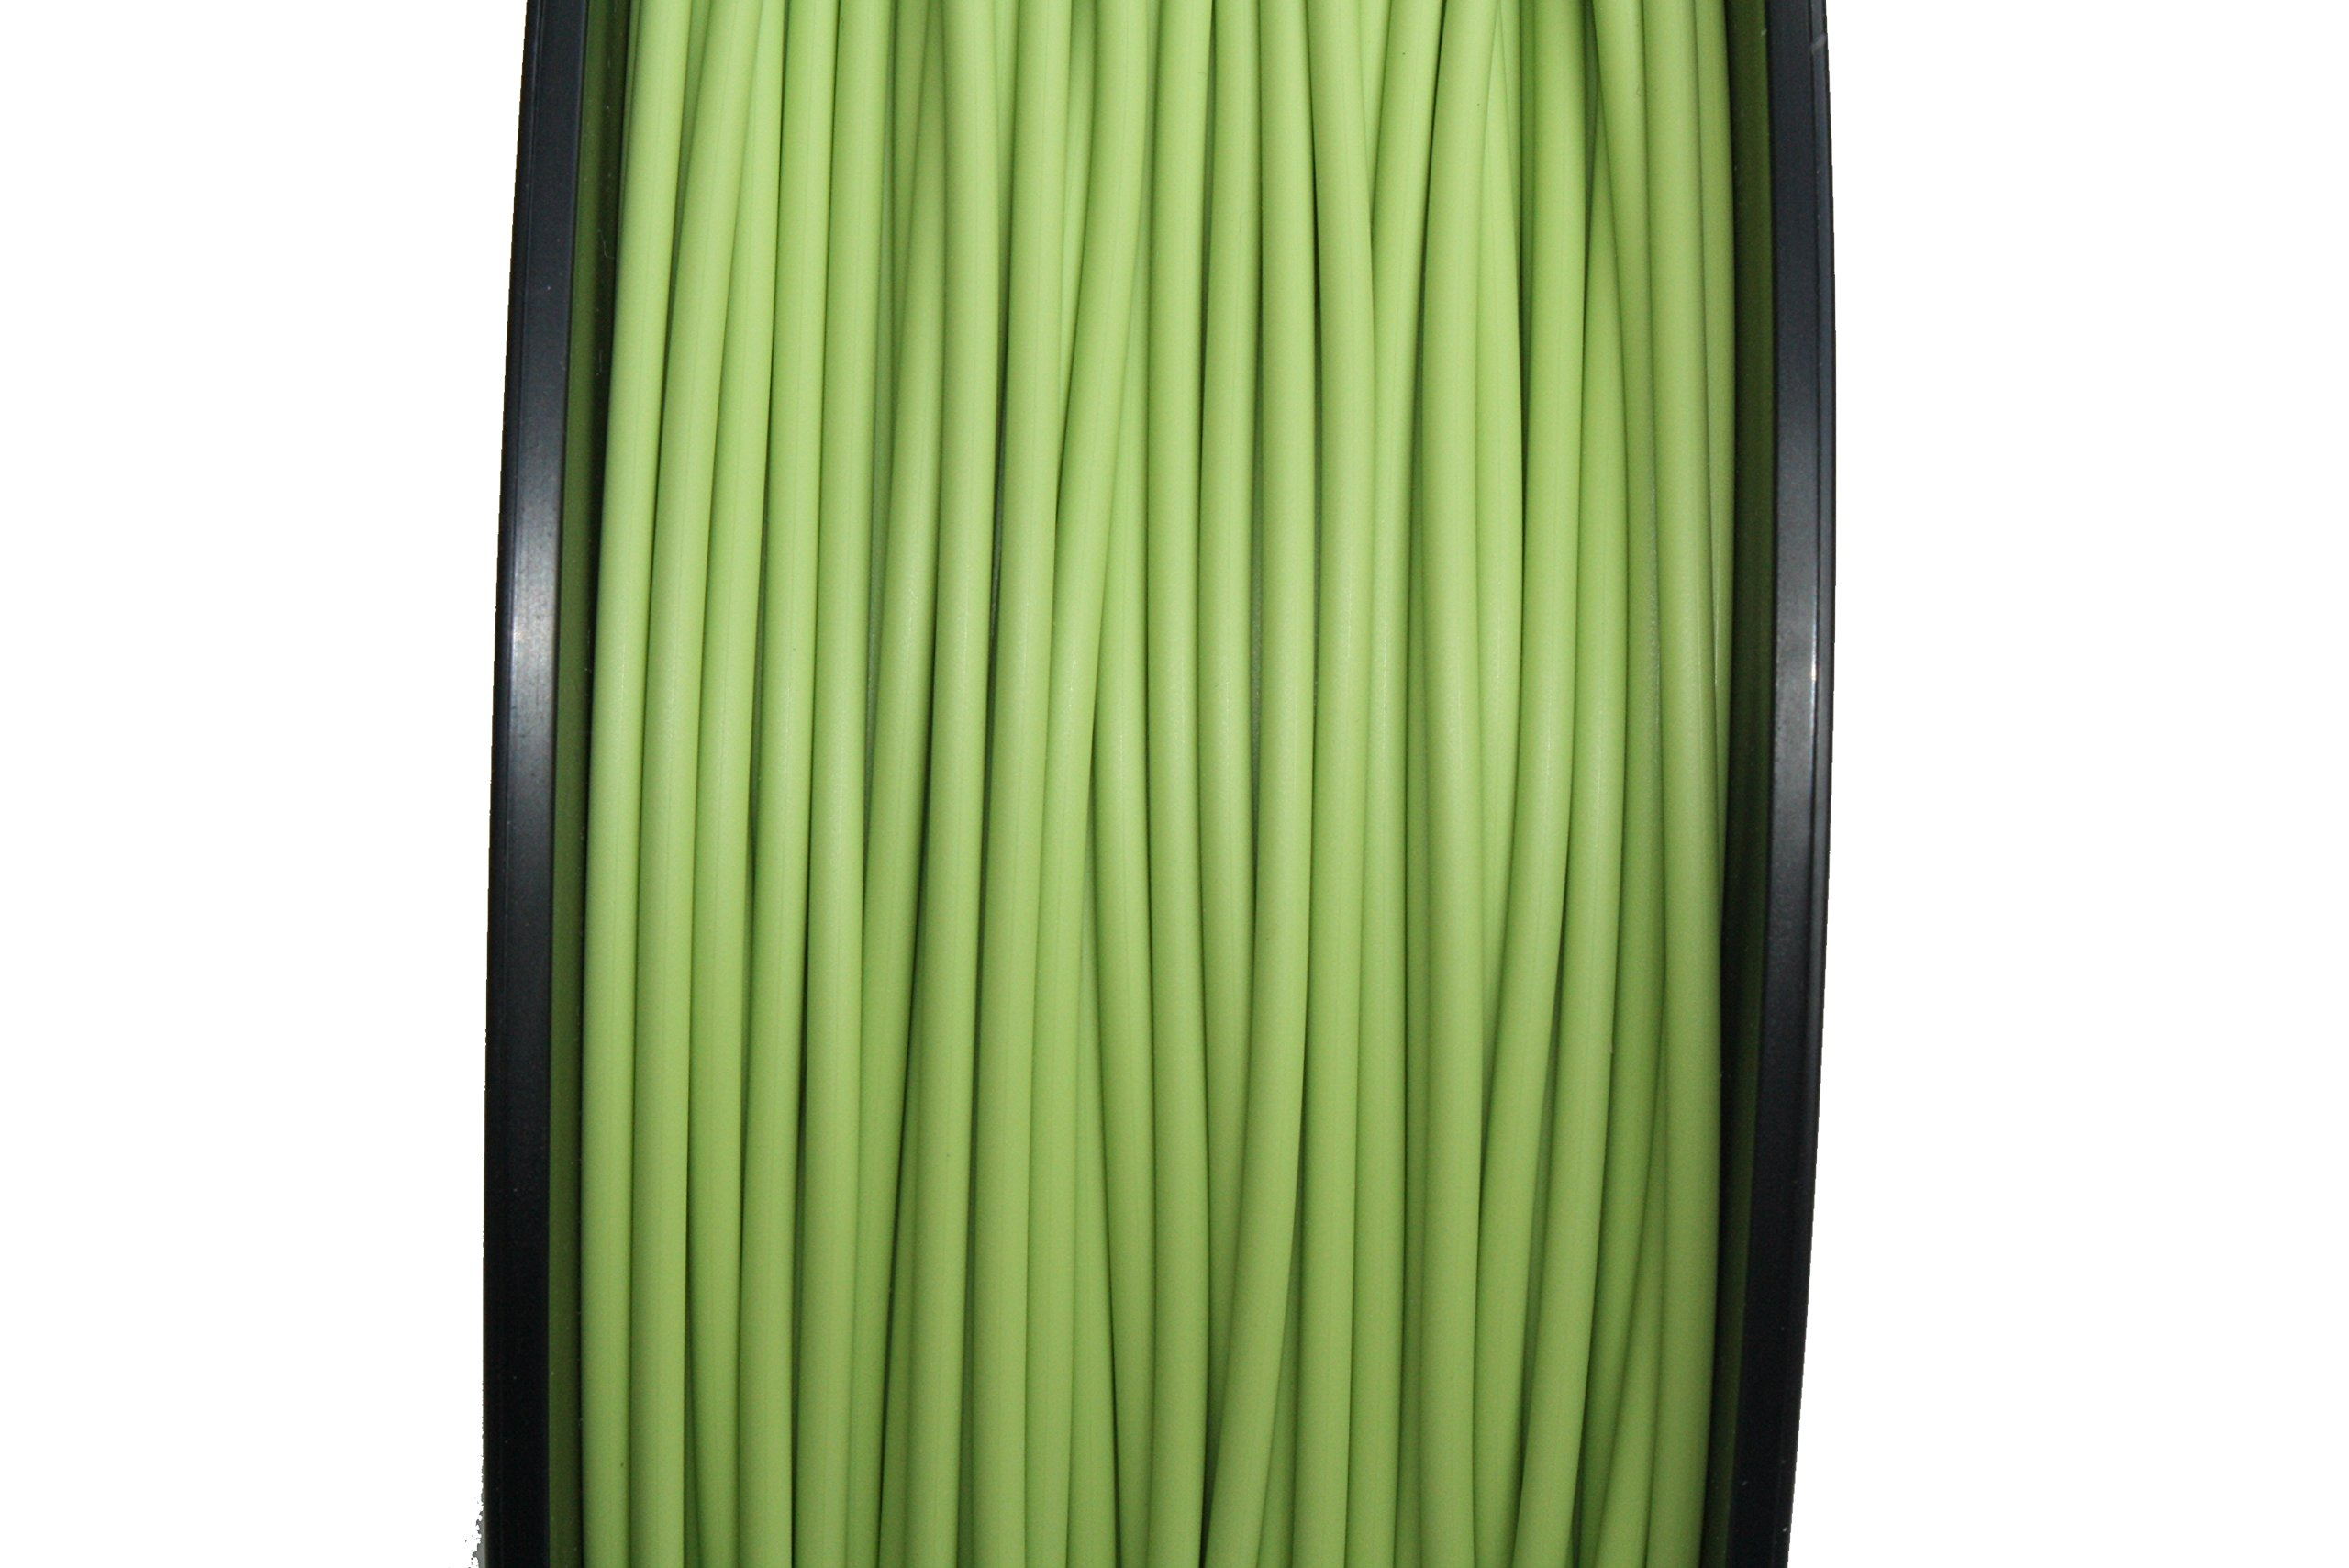 Greenery (Color of The Year 2017, Yellowish-Green Shade) 1.75mm 5KG Spool (11 lbs/roll) FilaCube PLA 2 (PLA 2nd Generation) 3D Printer Filament [Made in USA] Pantone 15-0343